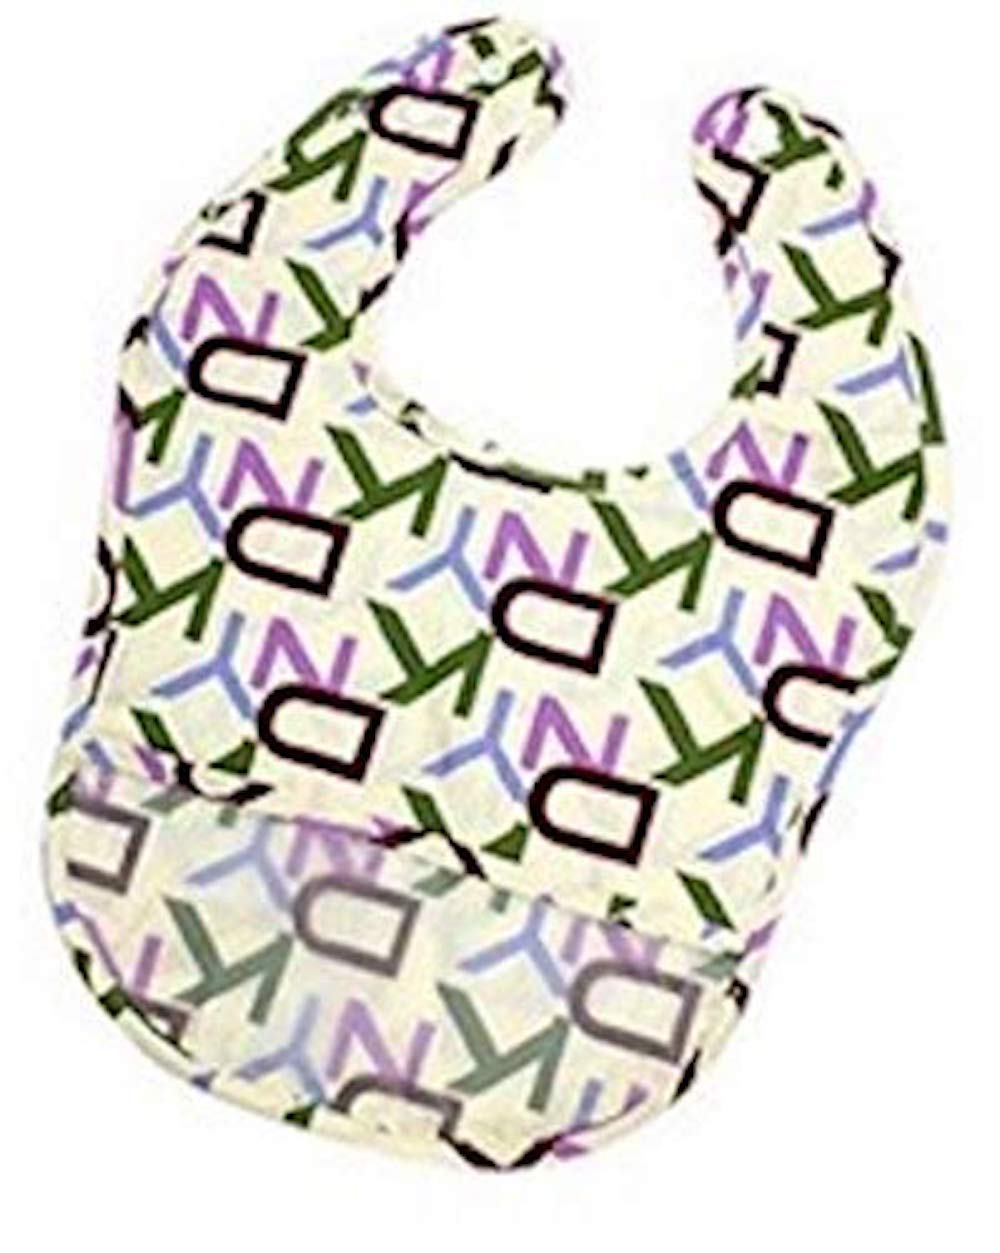 BornCare 2-Pack X-Large Waterproof Food Catching Bibs (14.5 x 10 inches) Fits Babies 0-36 Months, Adjustable Snap Closure